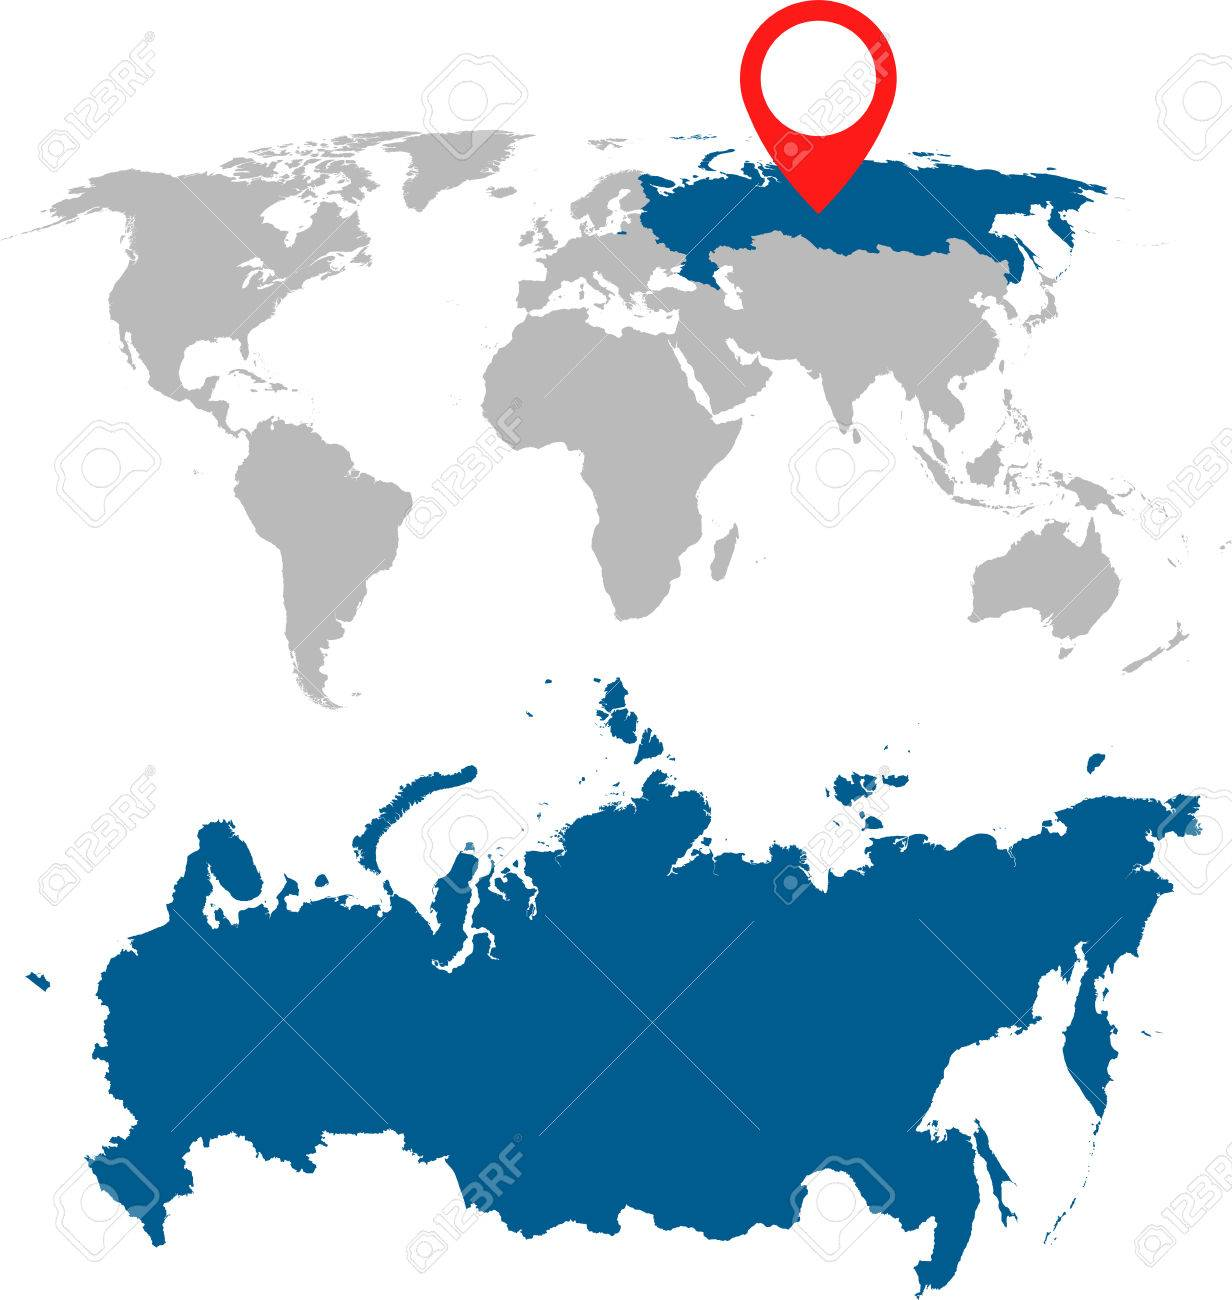 Detailed Map Of Russia Russian Federation And World Map